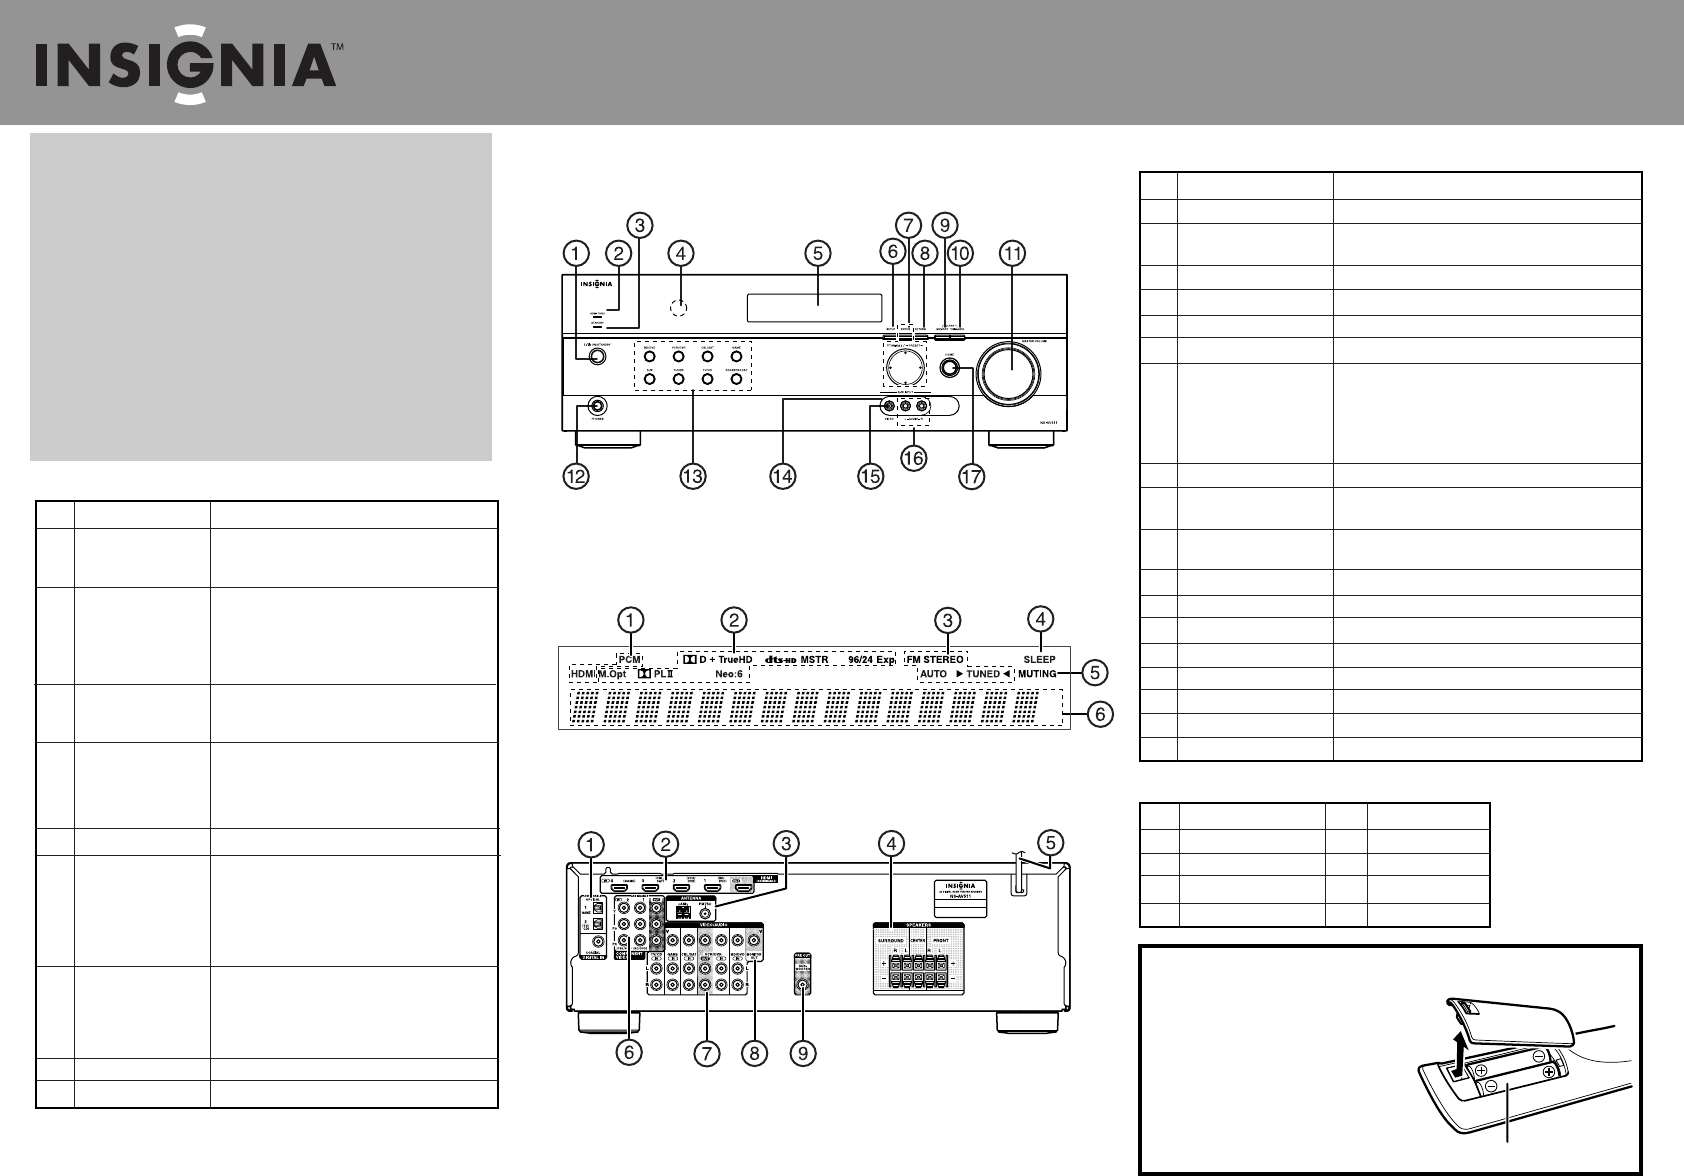 Insignia home theater system ns ht511 51 user guide insignia ns ht511 51 home theater system user manual sciox Gallery